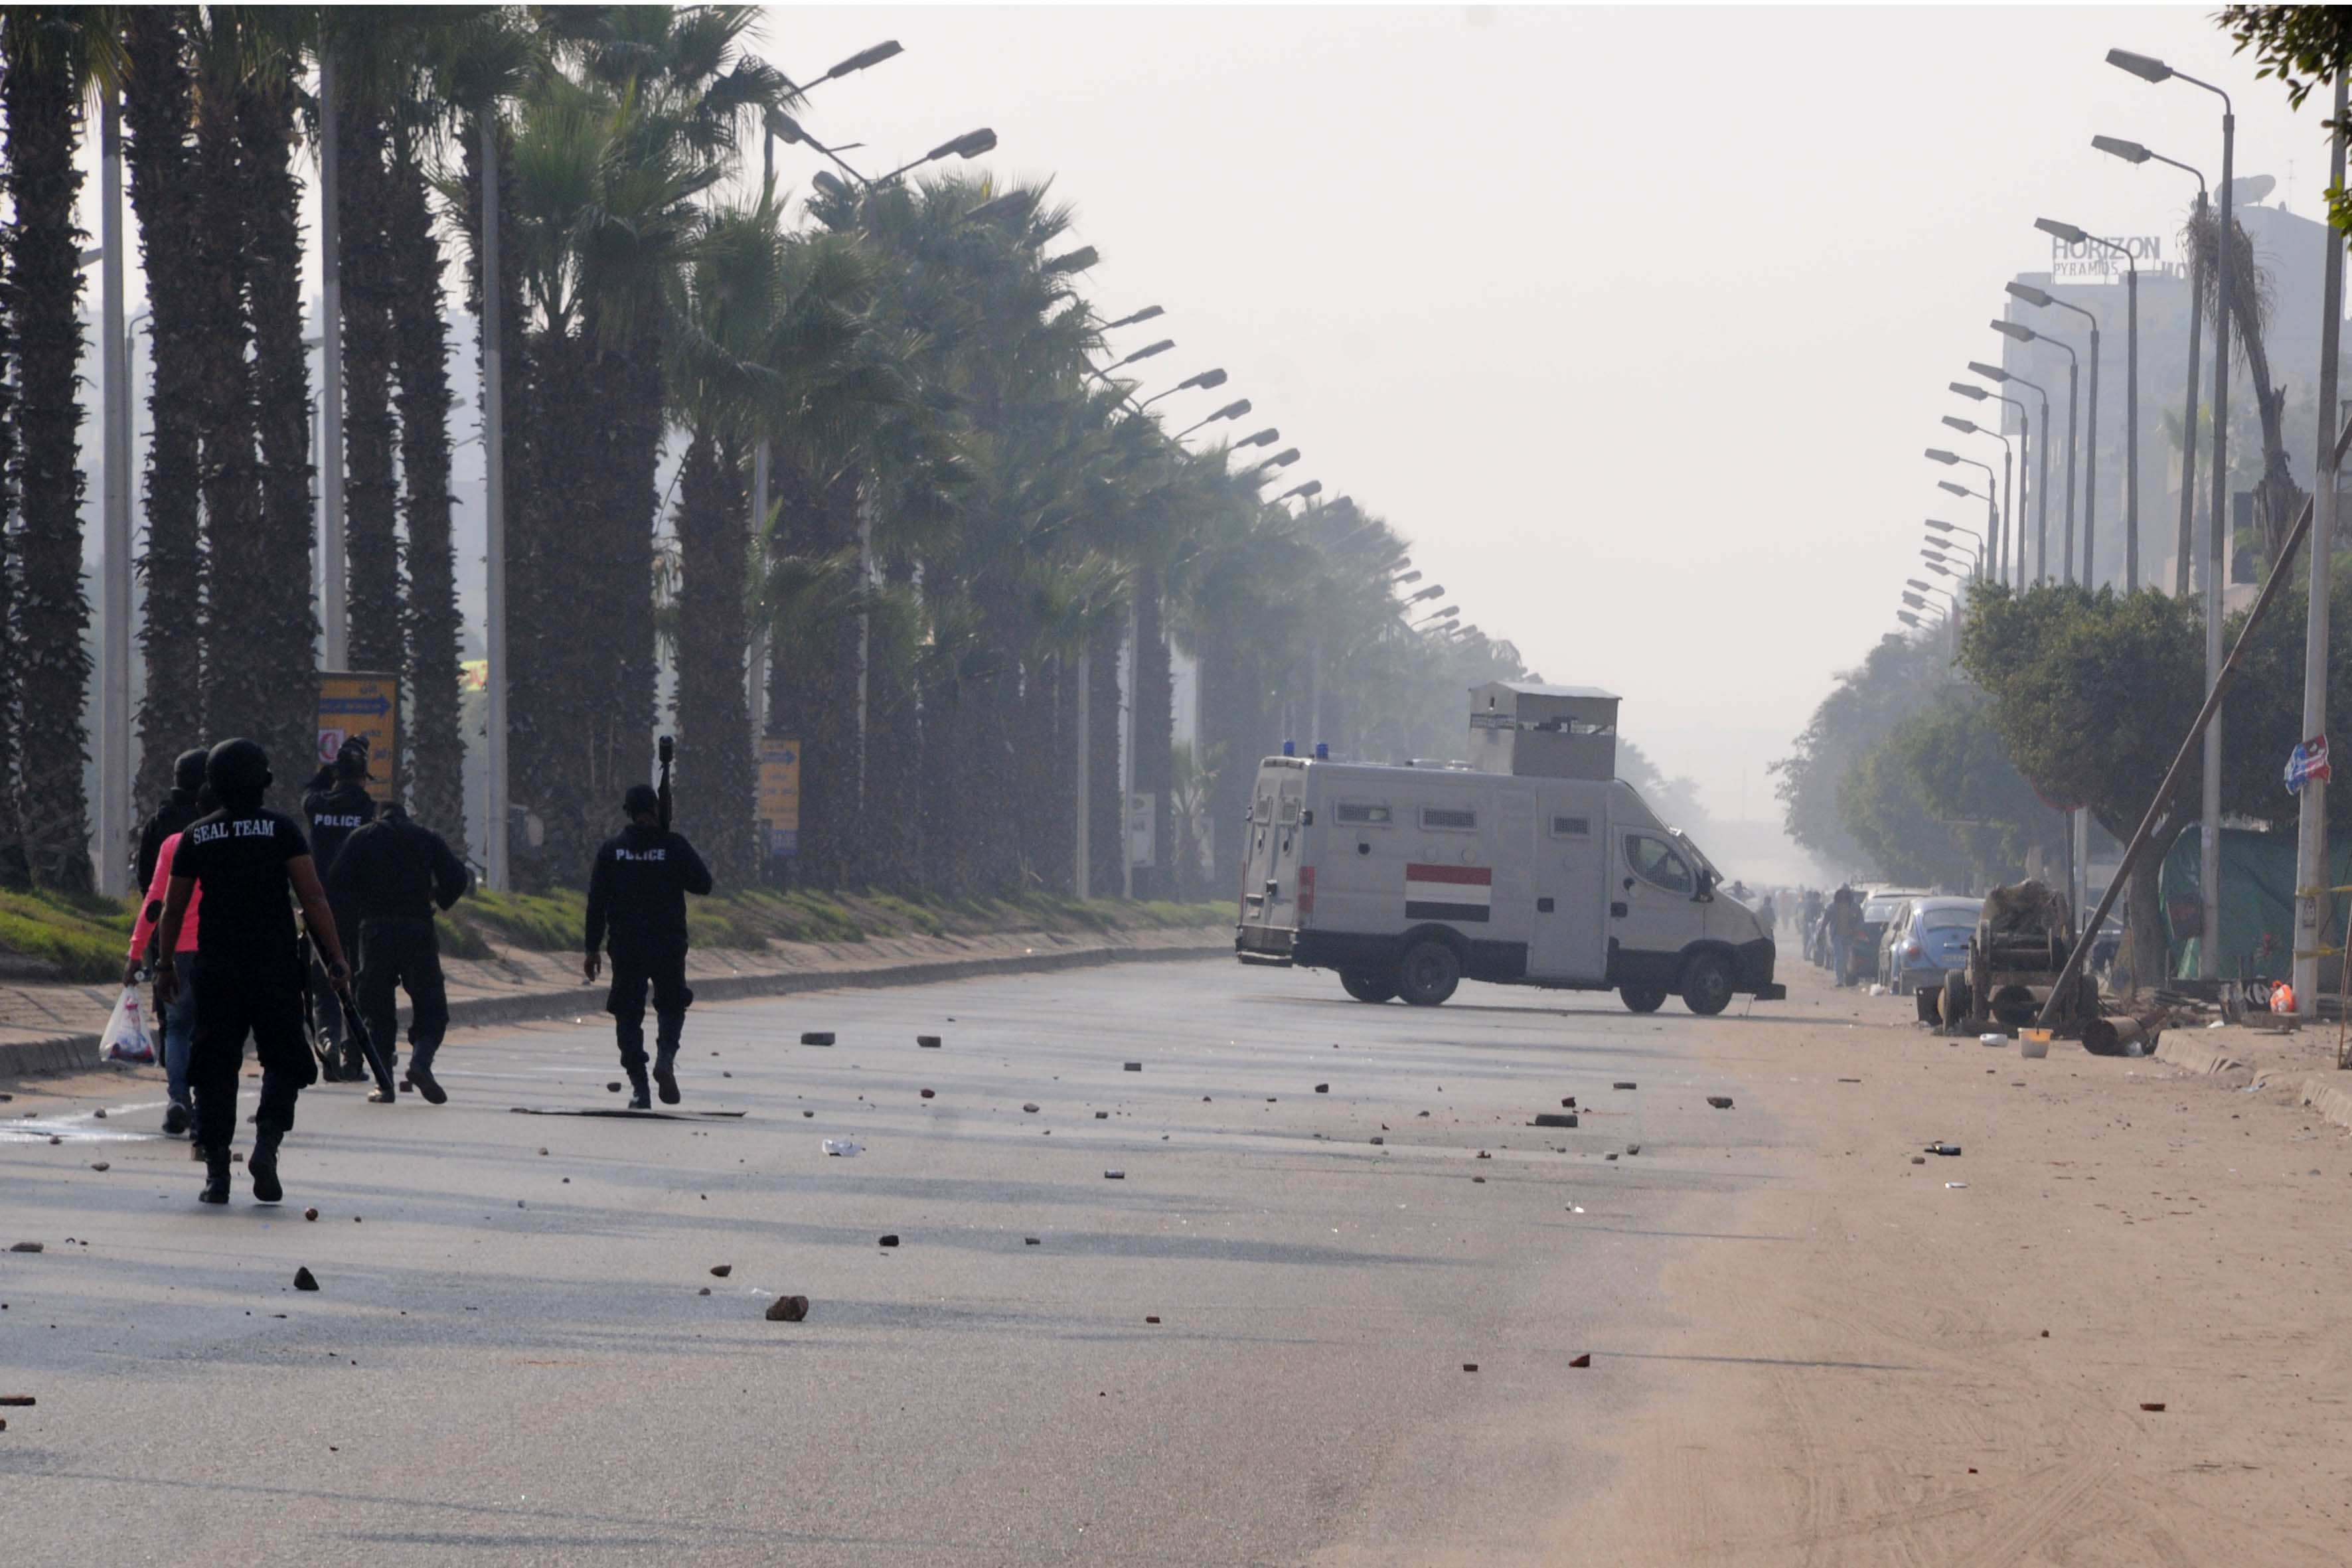 Pro-Morsi protesters and police clash in Al-Haram area on 3 January  Ahmed Al-Malky